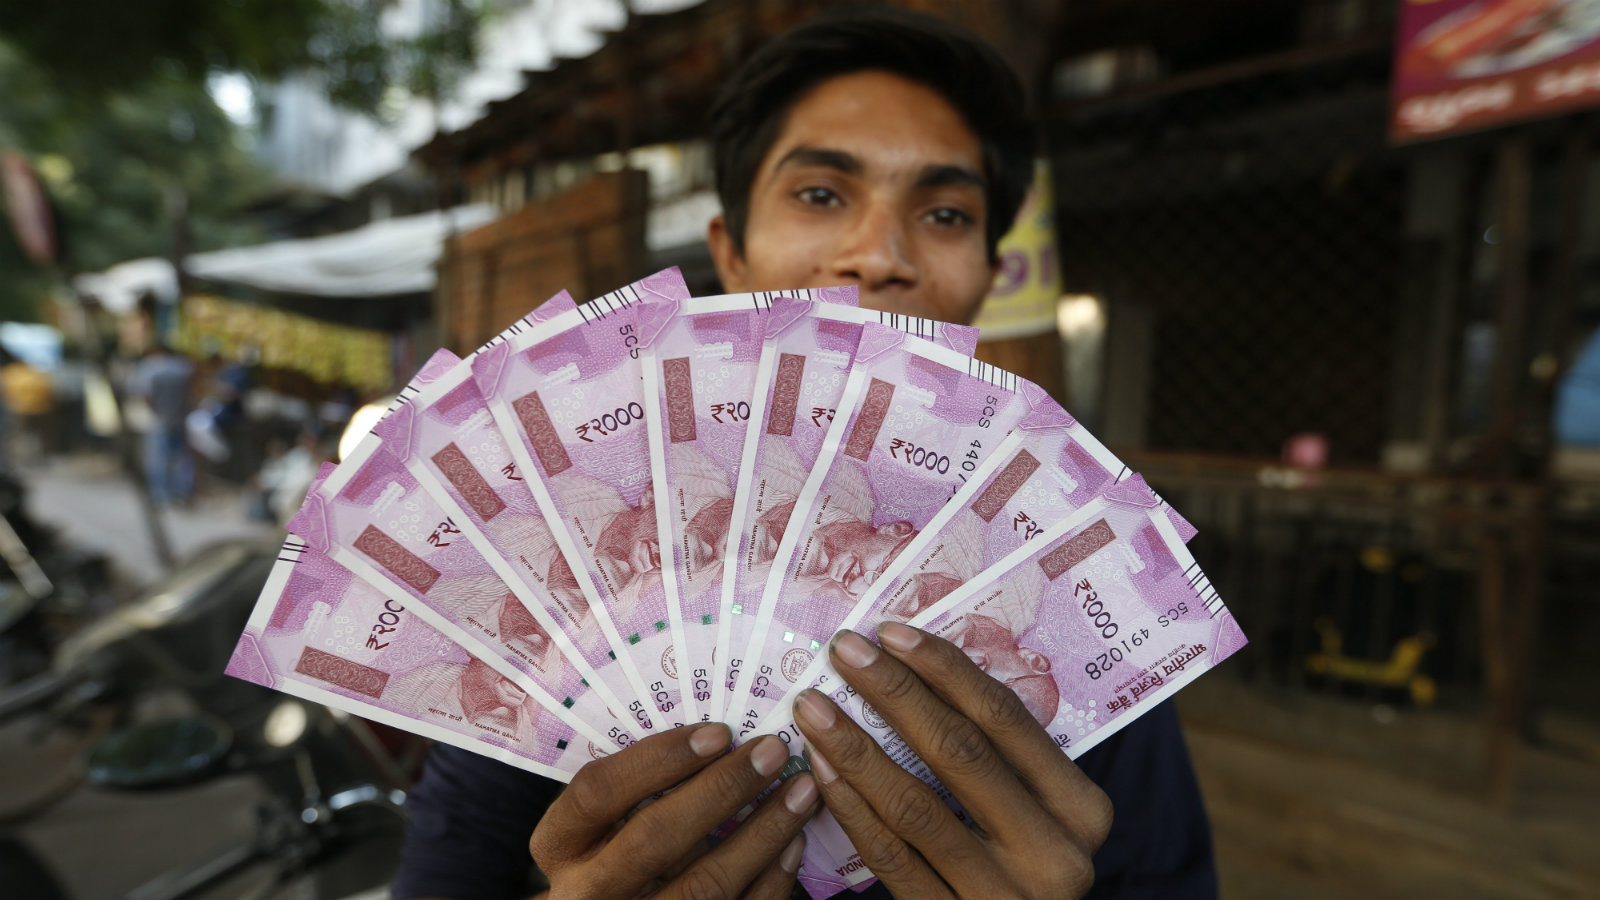 An Indian man displays new currency notes of 2000 Indian rupee in Ahmadabad, India, Friday, Nov. 11, 2016. Delivering one of India's biggest-ever economic upsets, Prime Minister Narendra Modi this week declared the bulk of Indian currency notes no longer held any value and told anyone holding those bills to take them to banks to deposit or exchange them.